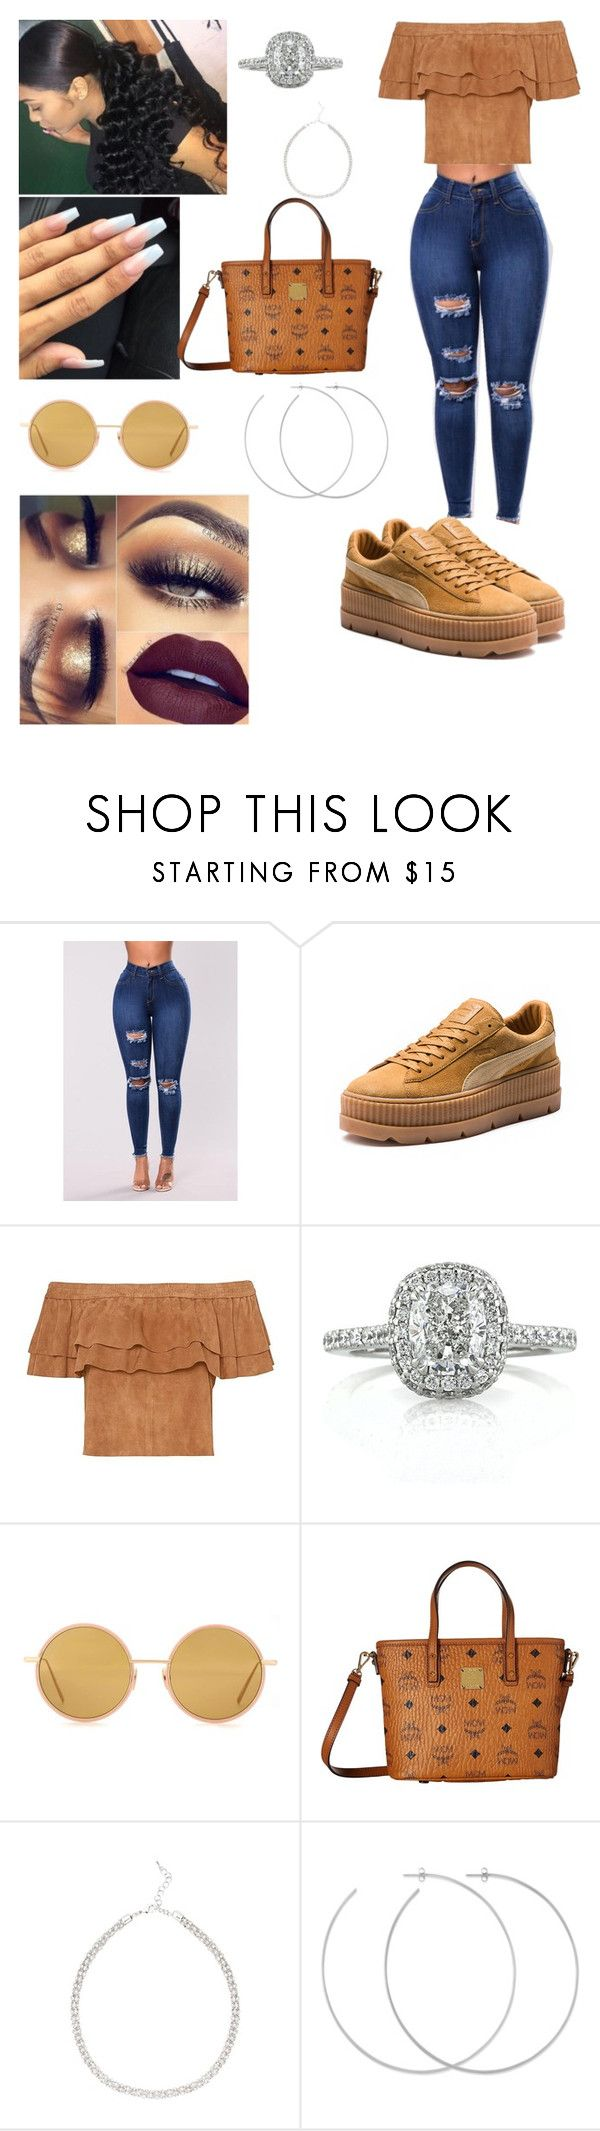 """"" by takiyuaaa ❤ liked on Polyvore featuring Puma, Mark Broumand, Acne Studios, MCM and Allison Bryan"